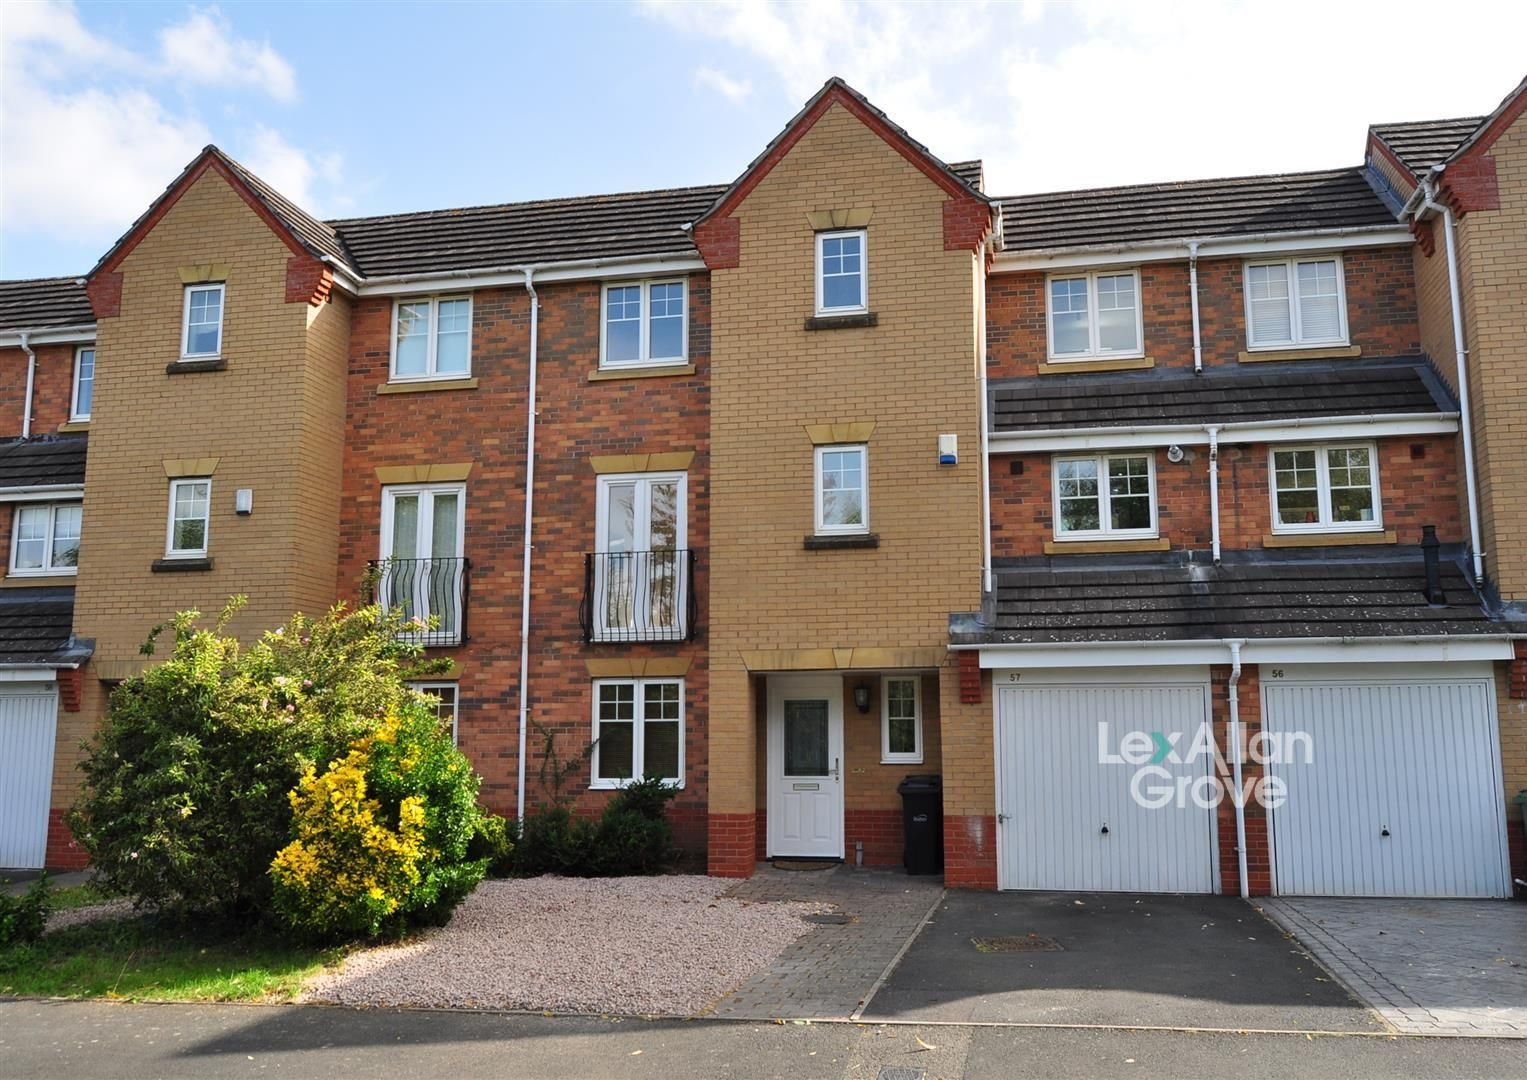 3 bed town-house for sale 1